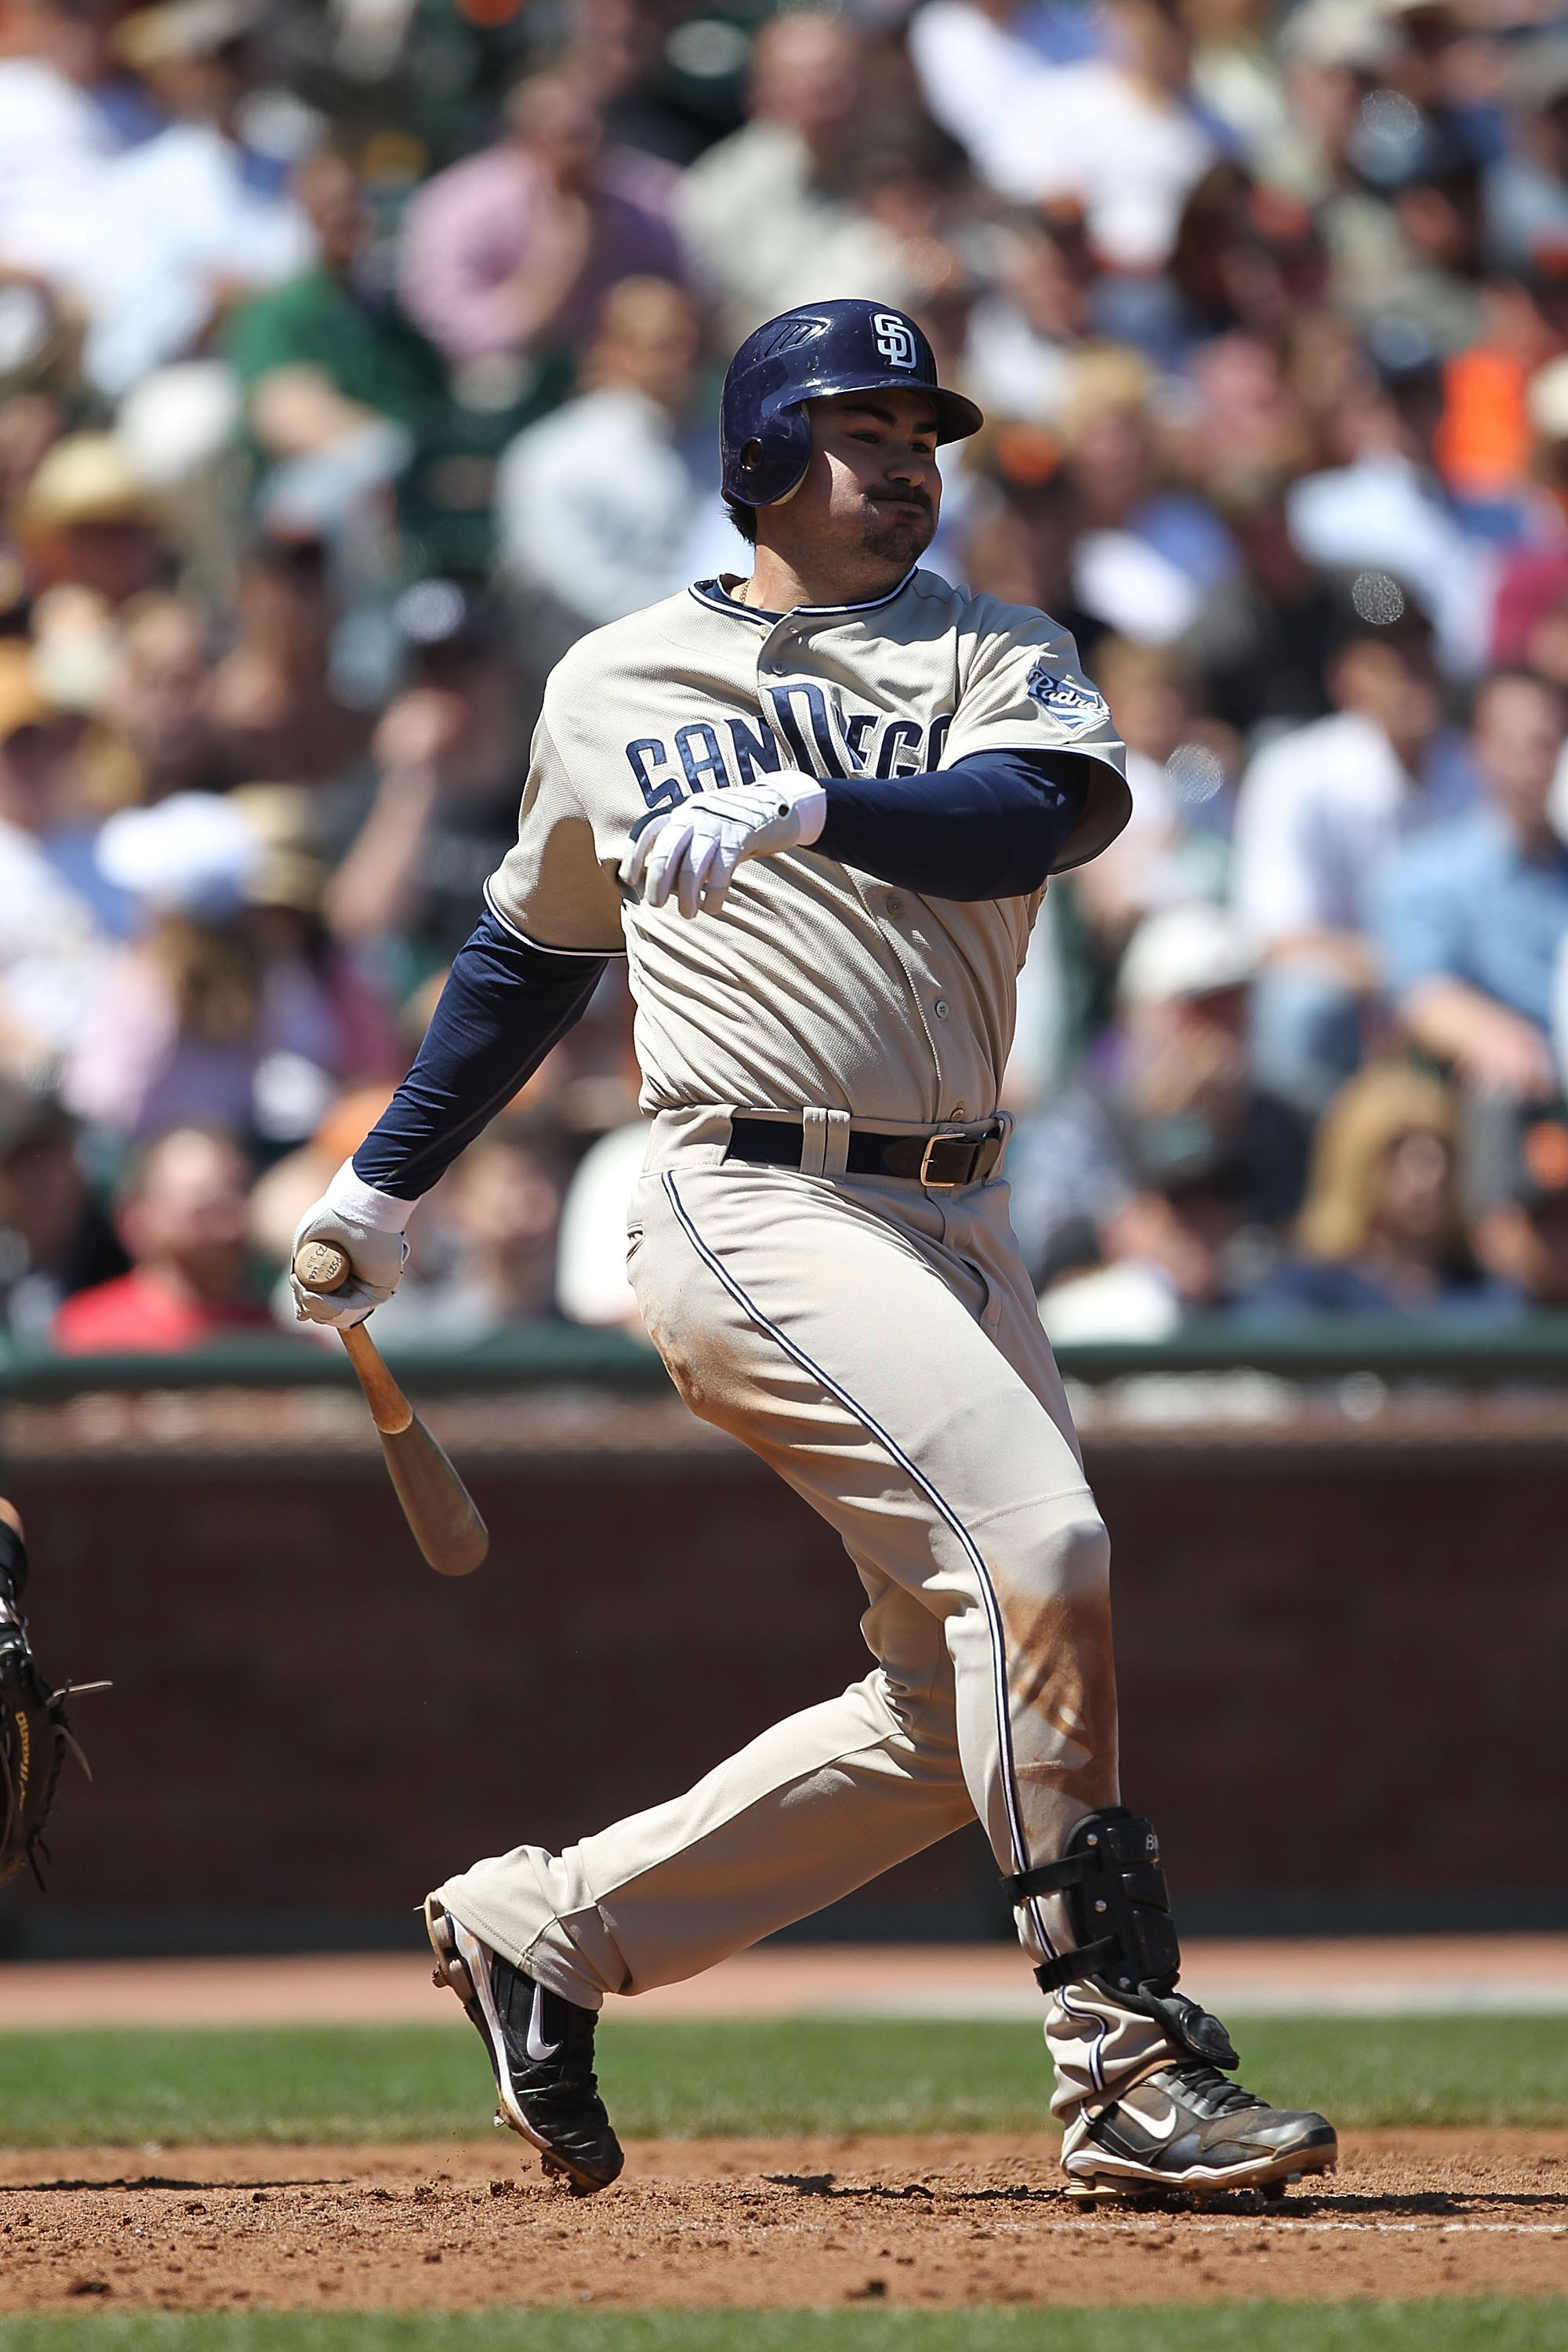 SAN FRANCISCO - MAY 13:  Adrian Gonzalez #23 of the San Diego Padres bats against the San Francisco Giants during an MLB game at AT&T Park on May 13, 2010 in San Francisco, California.  (Photo by Jed Jacobsohn/Getty Images)